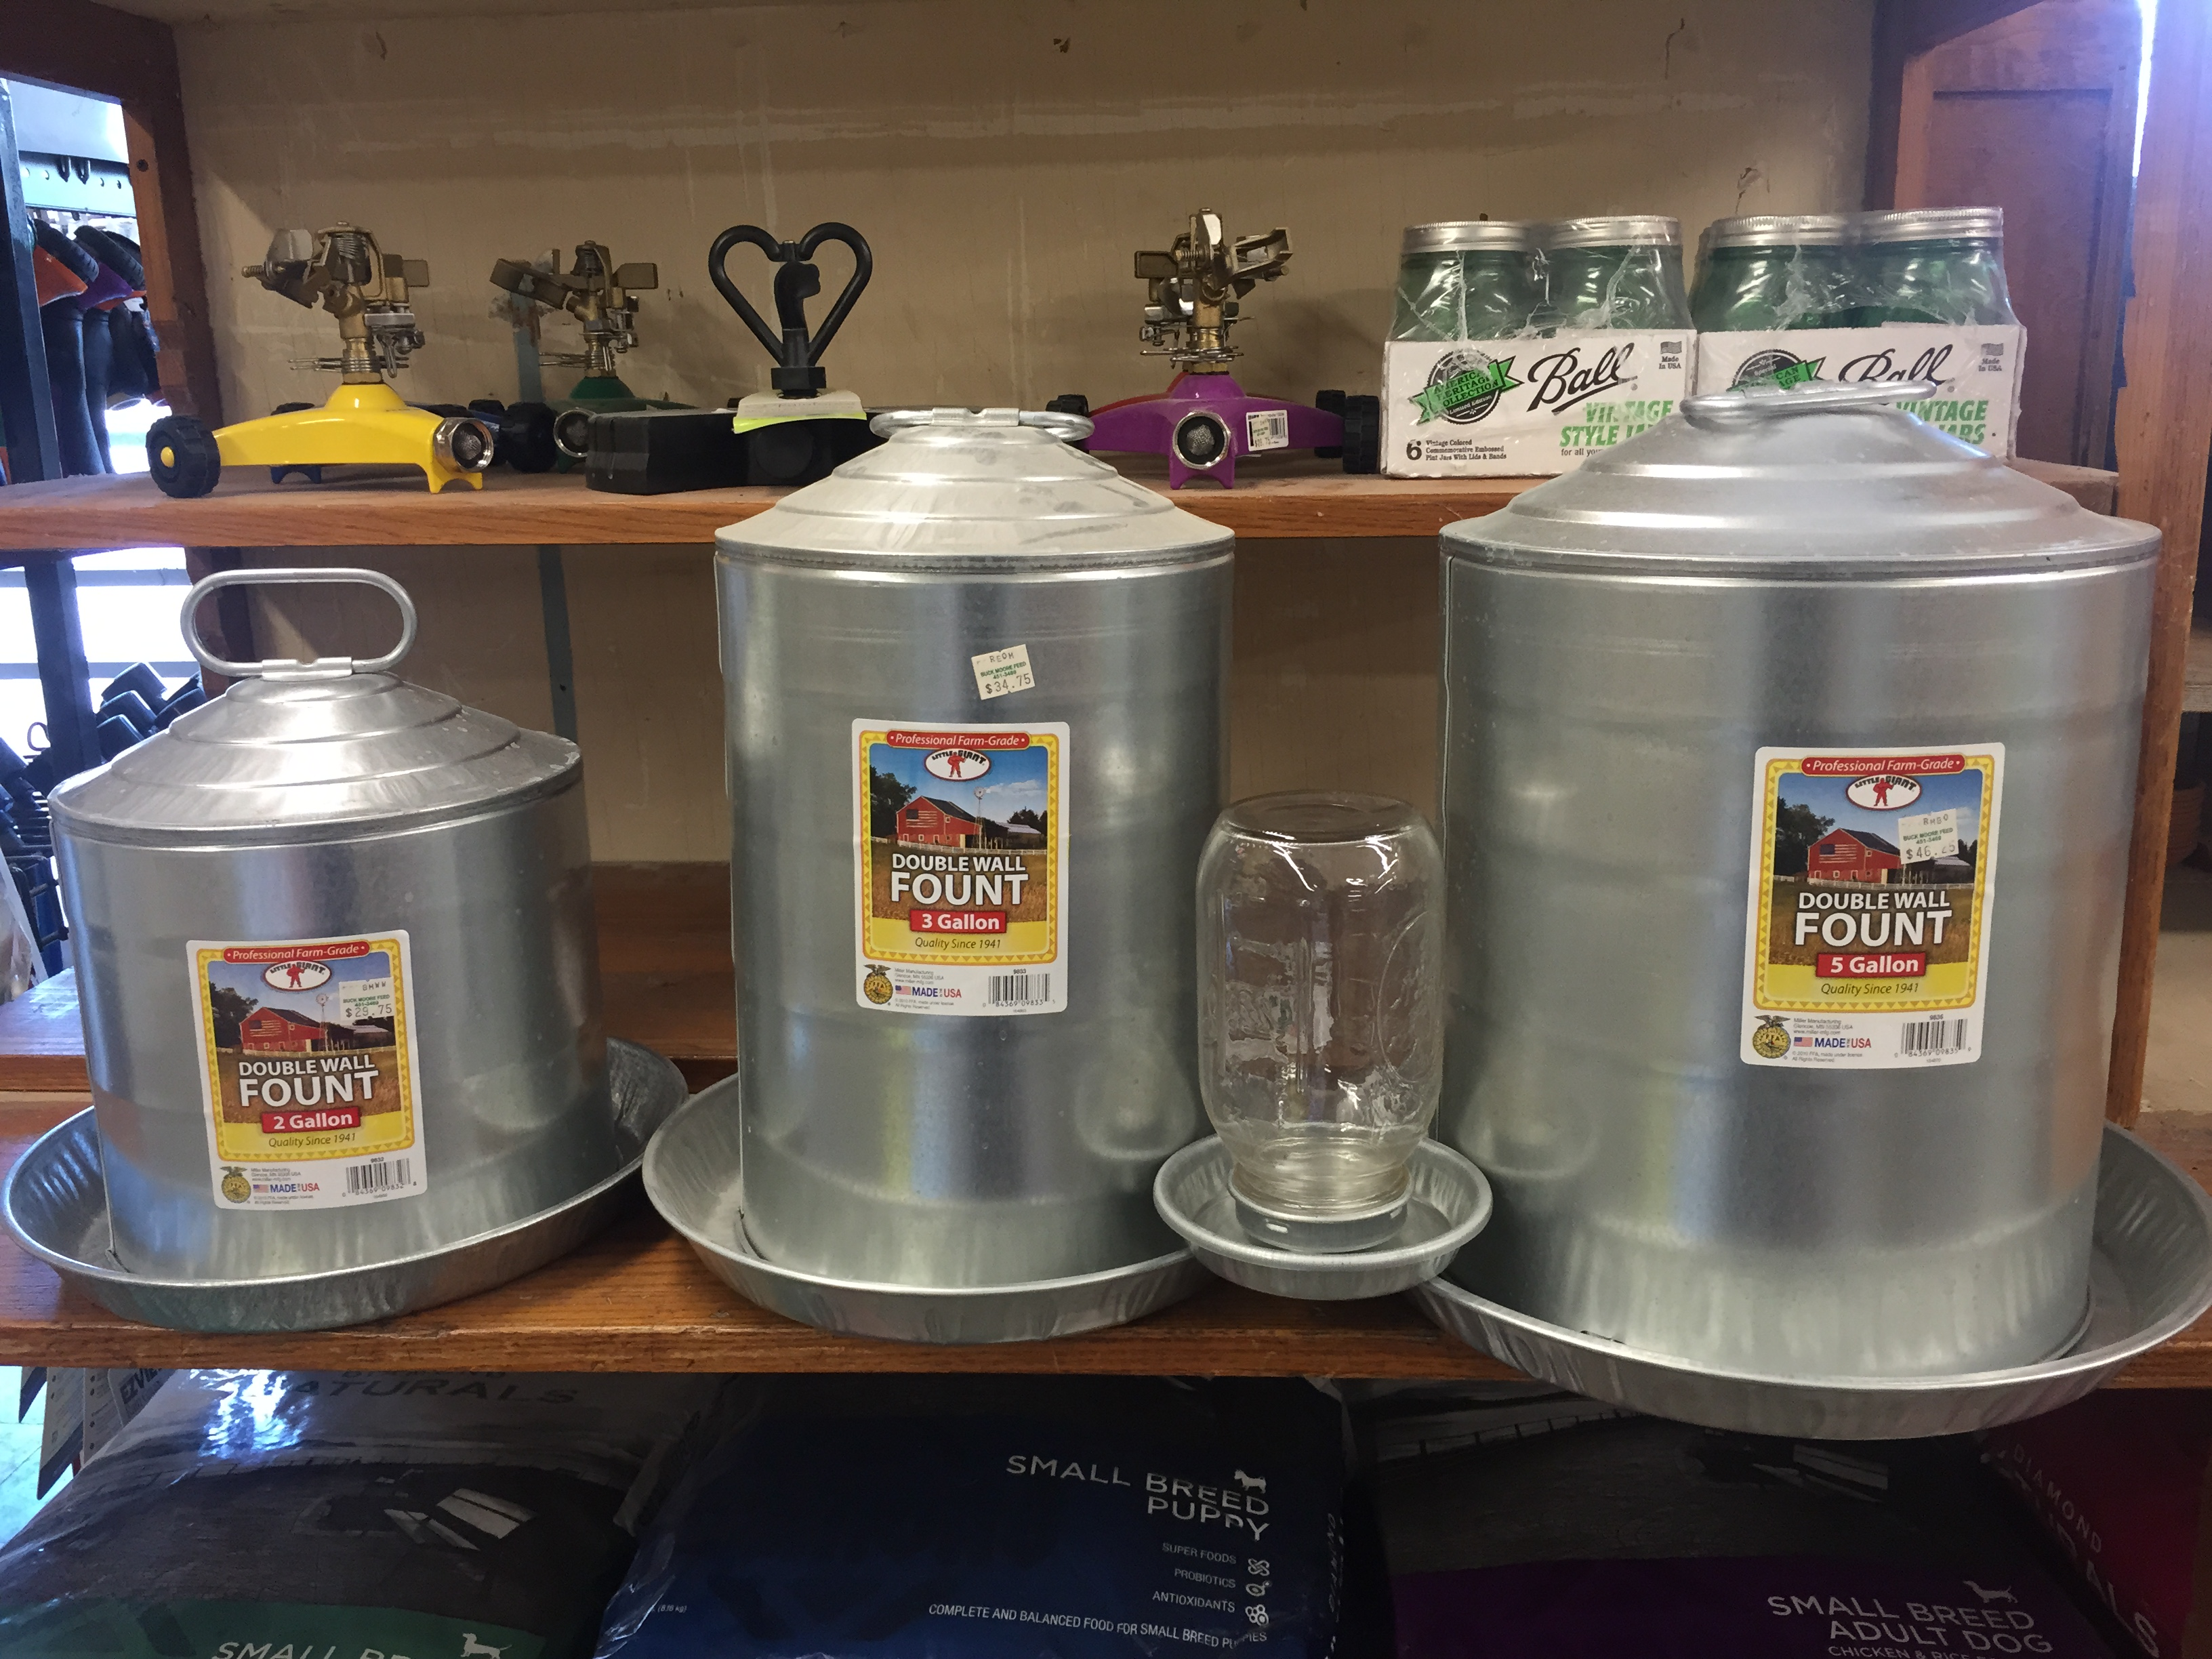 Available in 1 Qt, 2 Gal, 3 Gal, or 5 Gal